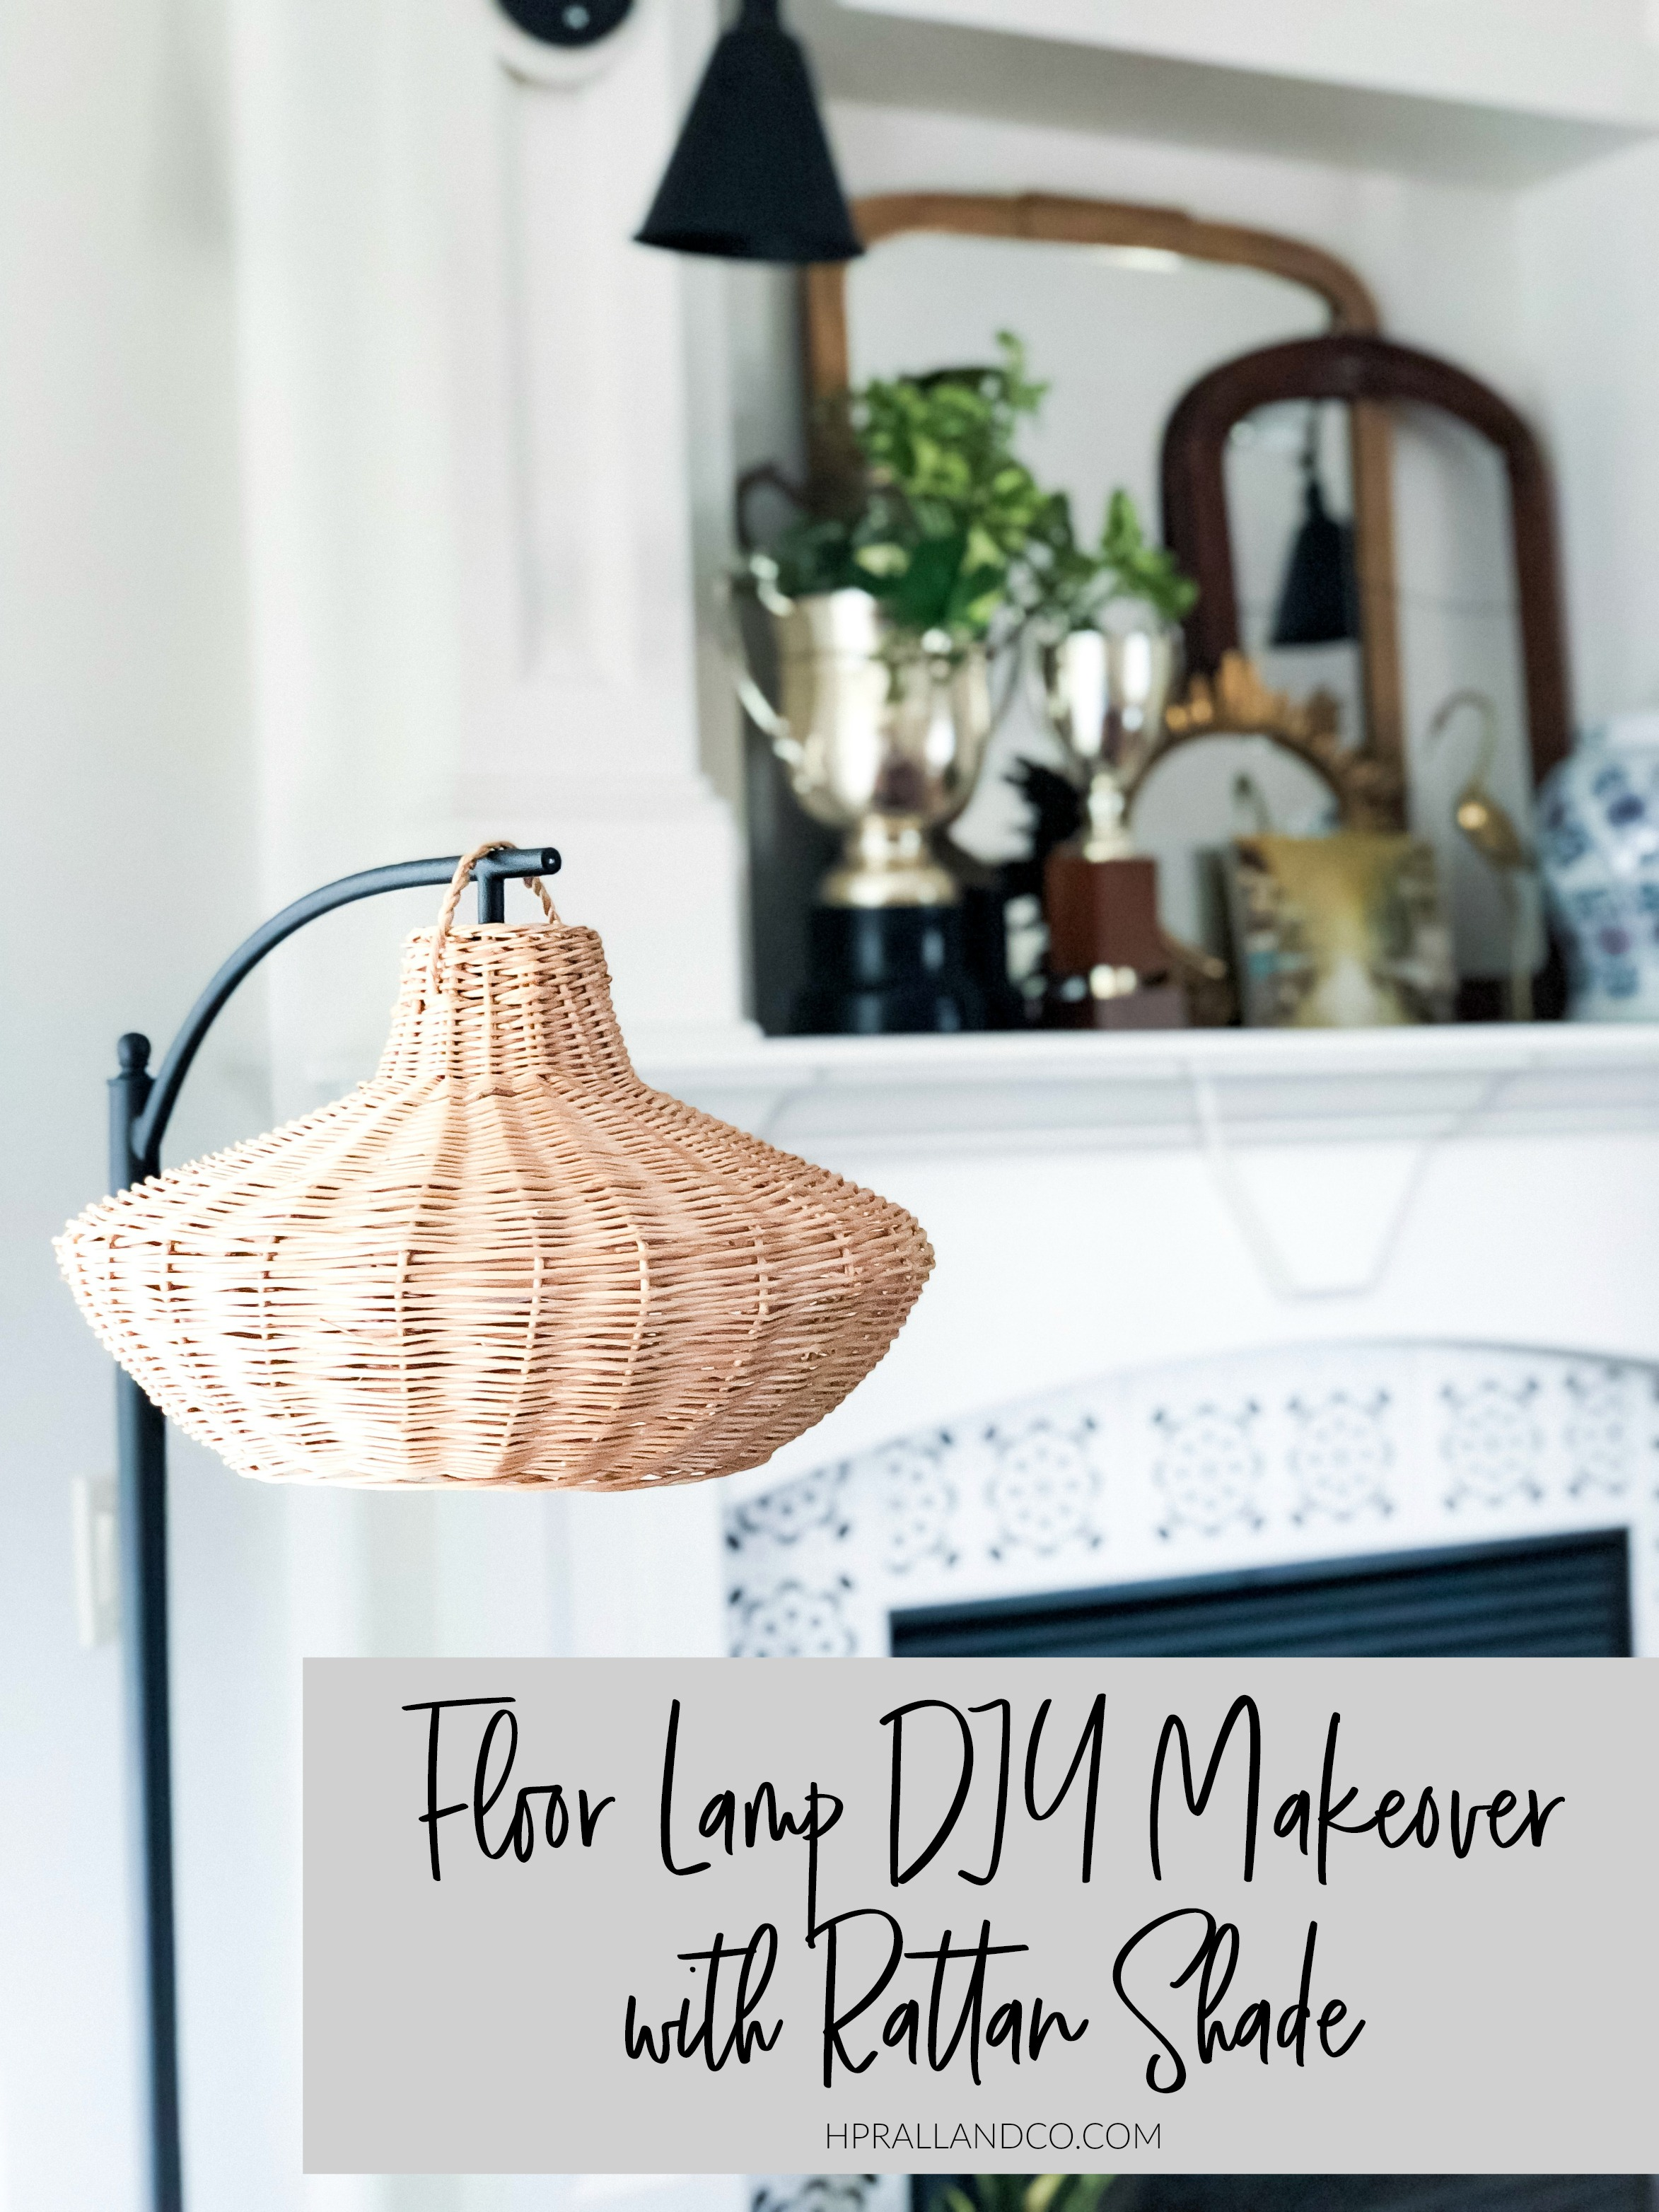 Floor Lamp DIY Makeover with Rattan Shade from hprallandco.com! | H.Prall and Co. Interior Decorating